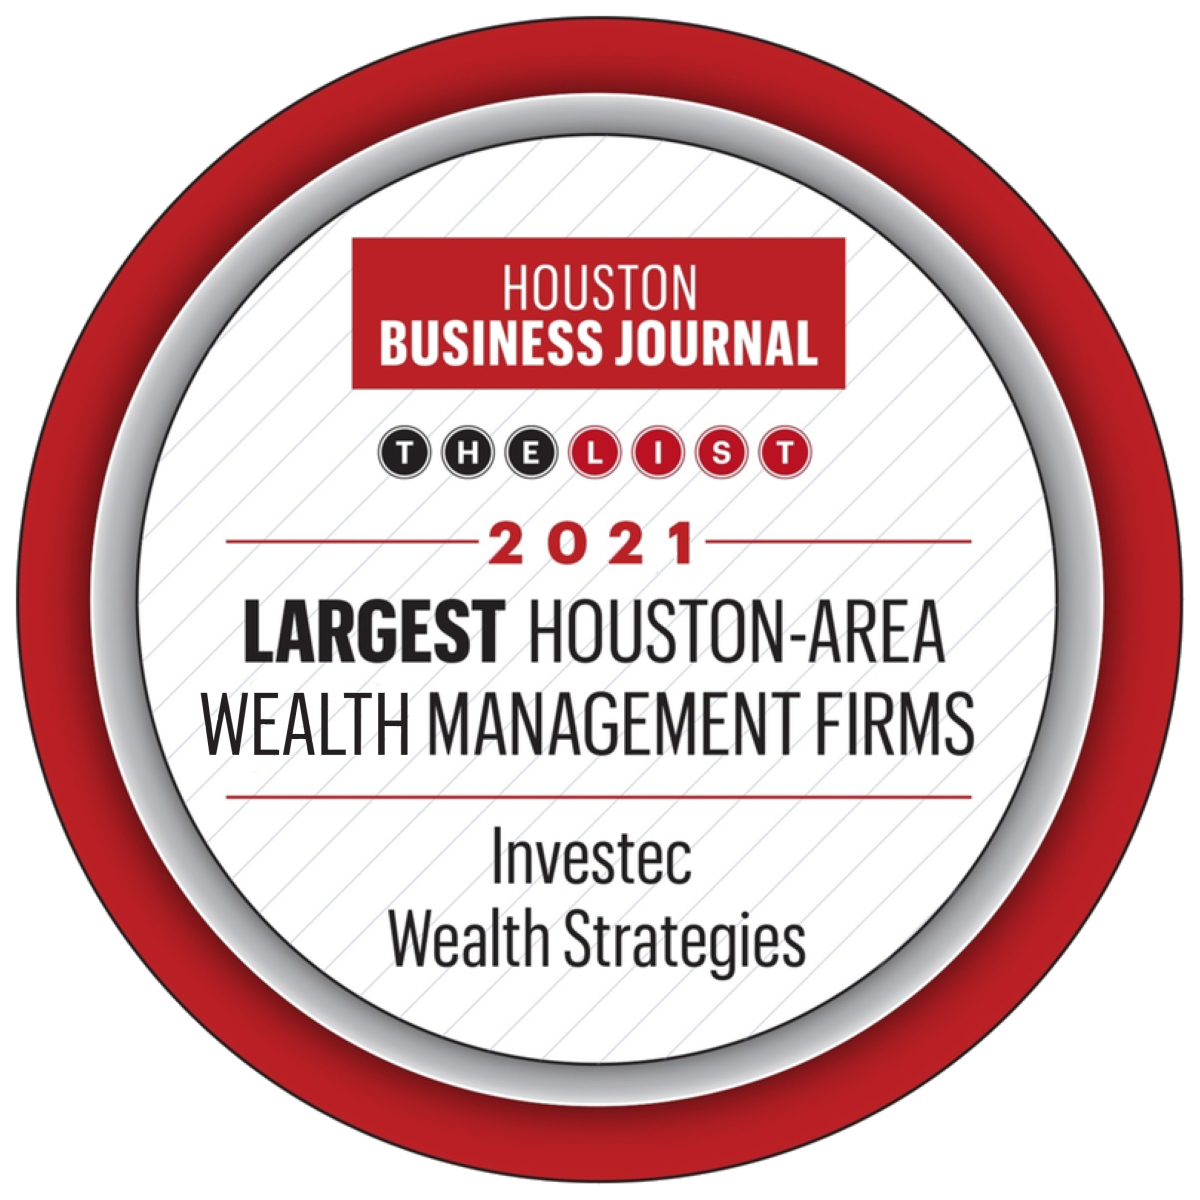 Investec - Houston Business Journal Largest Houston-Area Wealth Management Firms, 2021